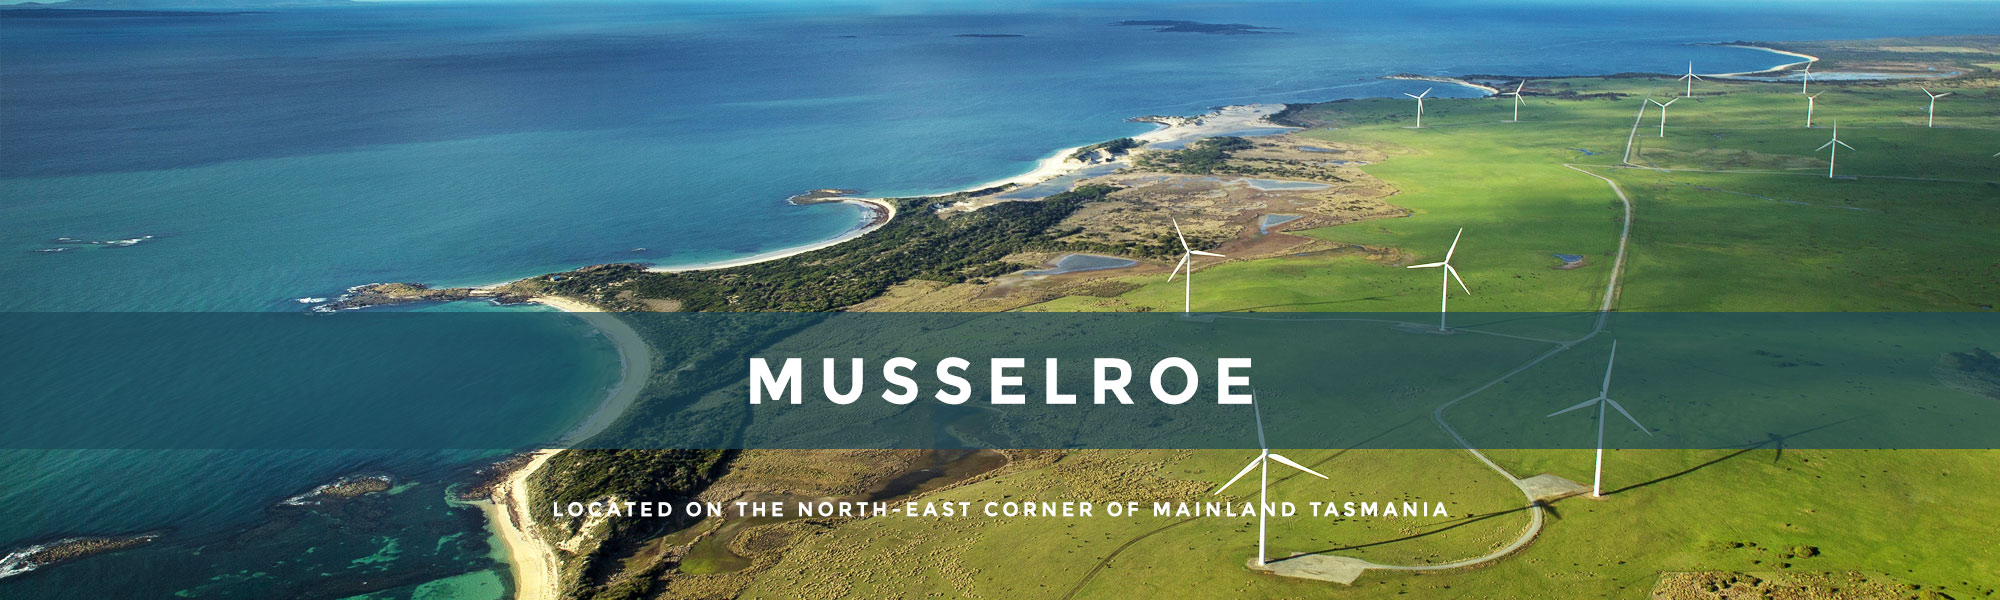 Musselroe-Wind-Farm